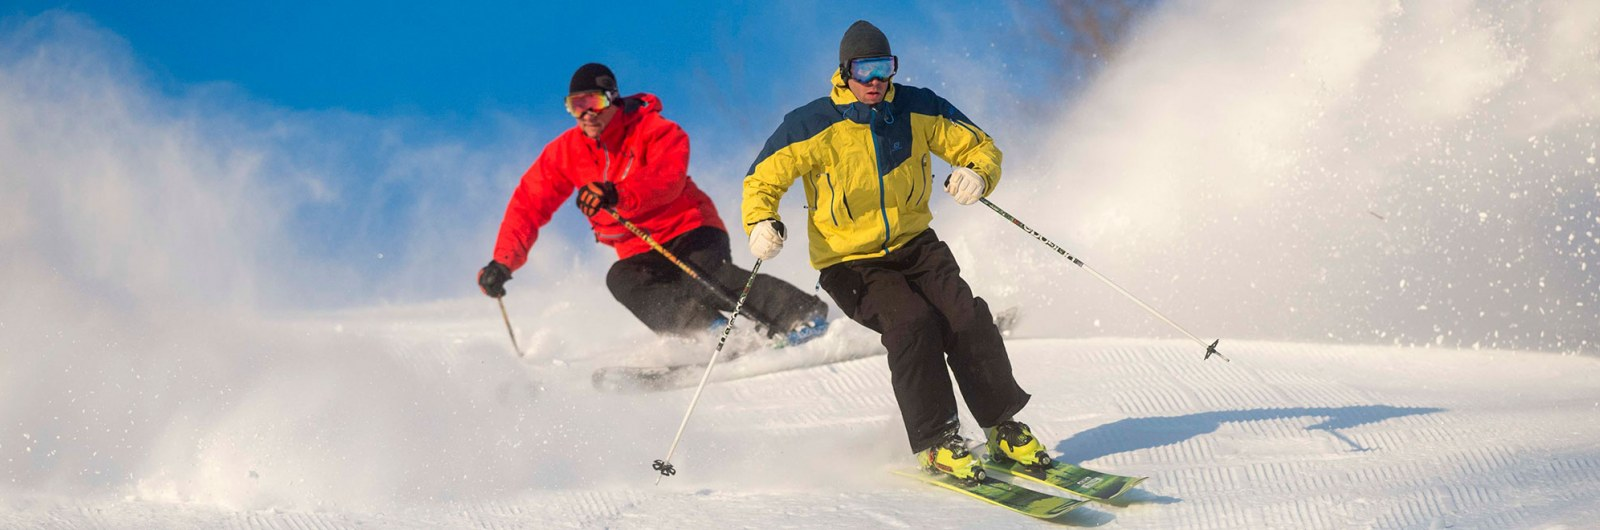 Two skiers carving and skiing fast down ski slope